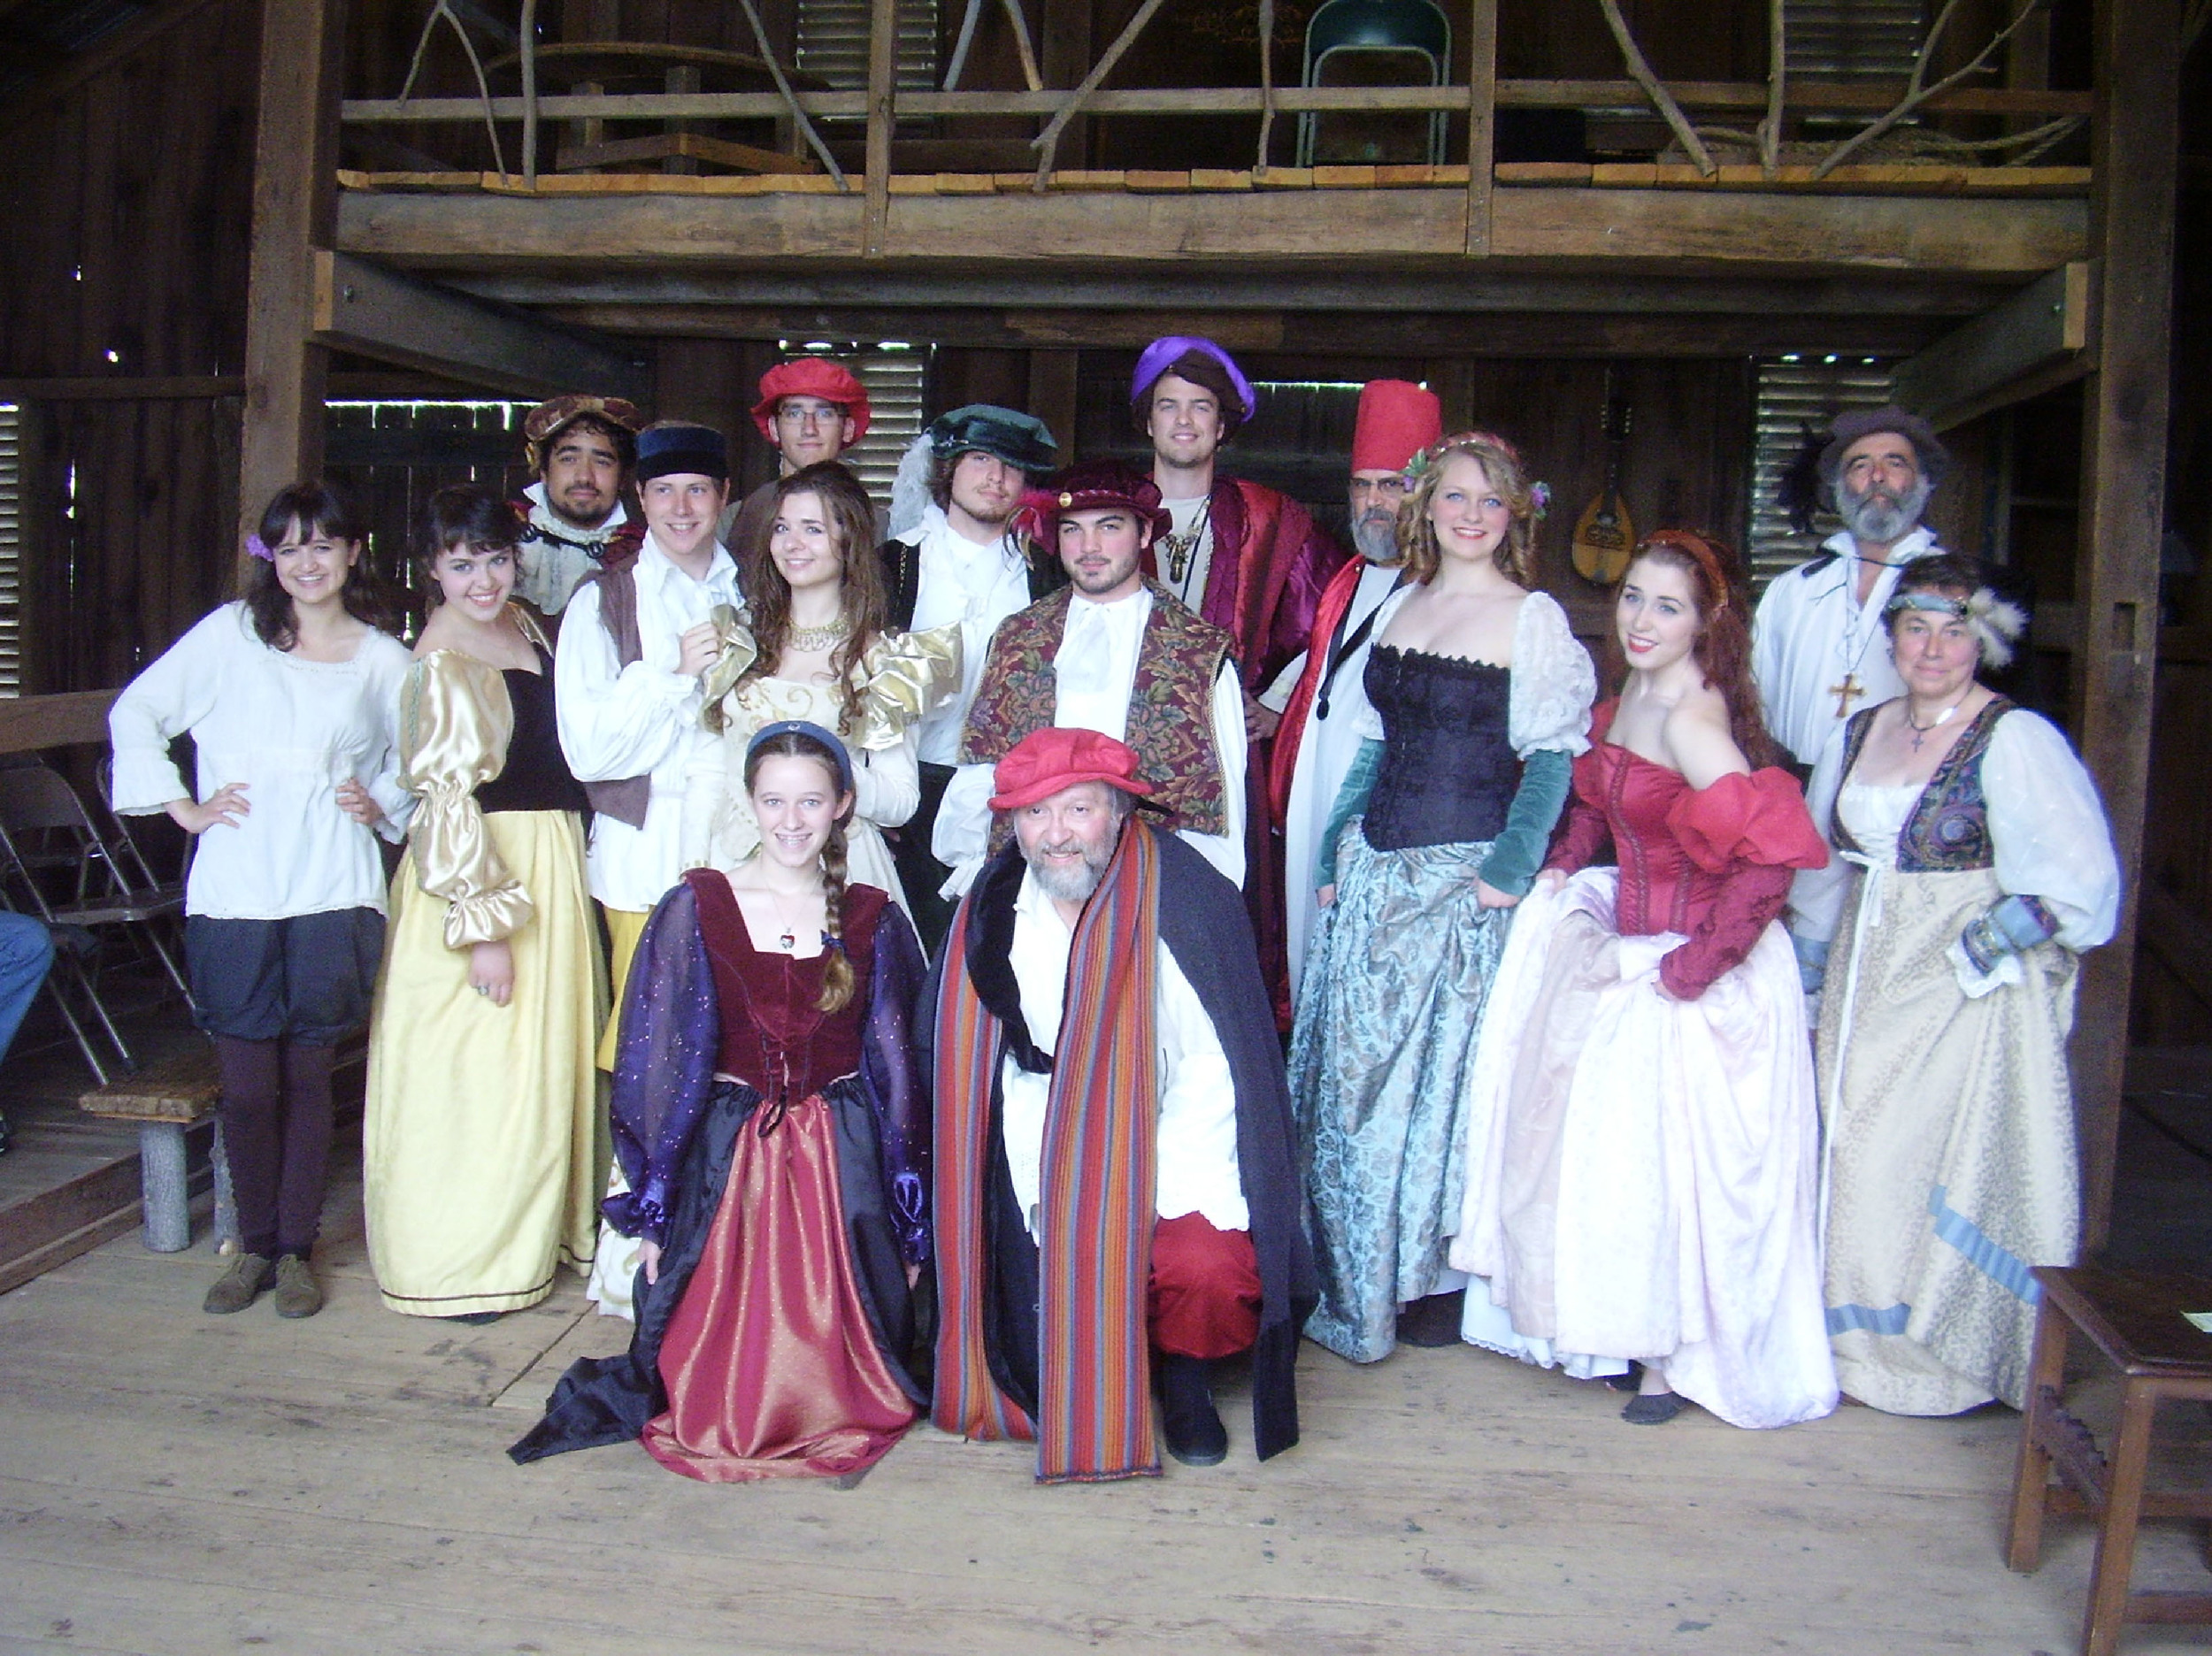 THE MERCHANT OF VENICE - MAY 2011